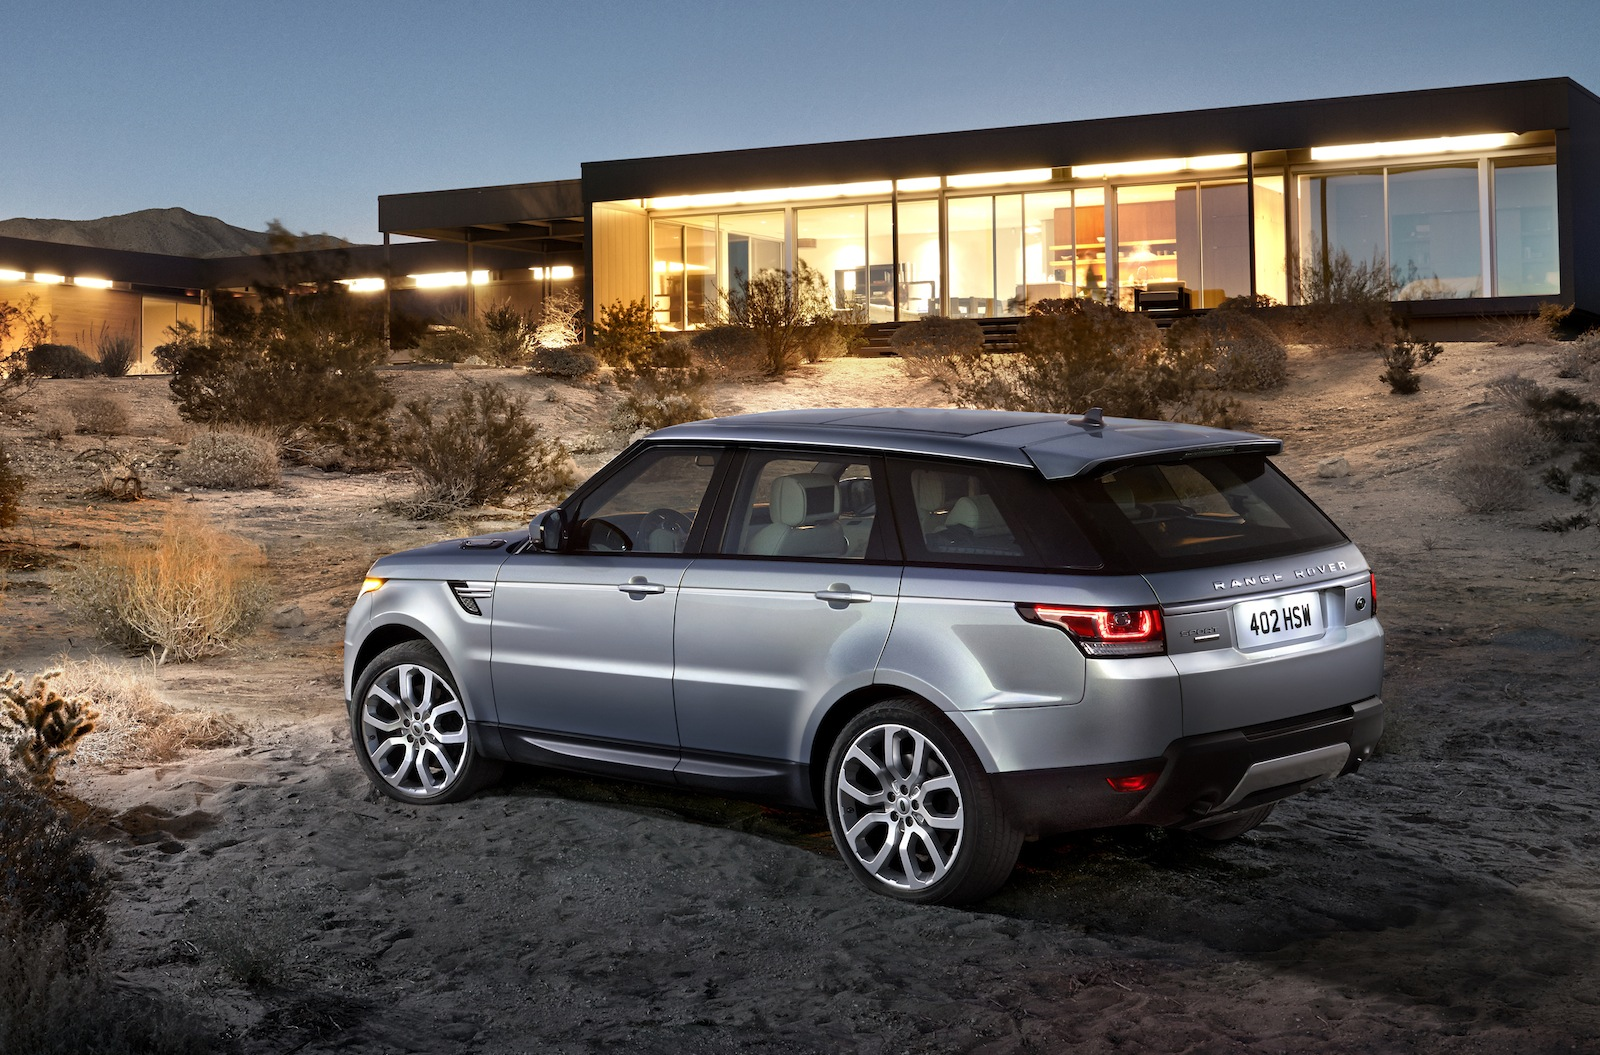 Revealed: 2013 Range Rover Sport